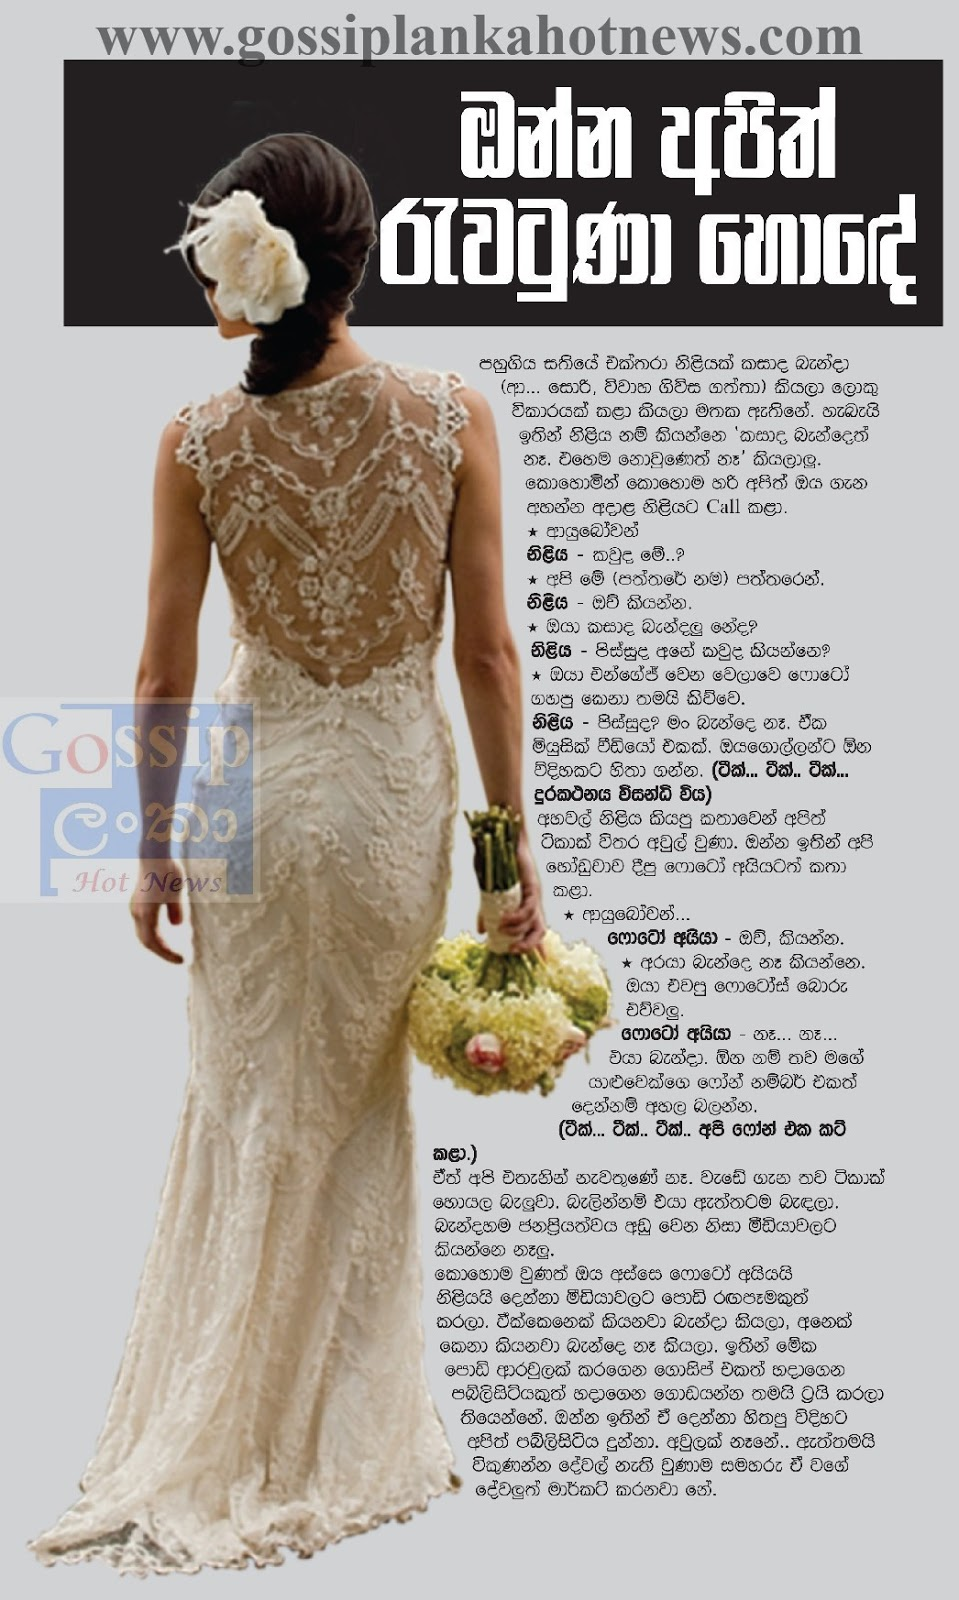 Maheshi Madushanka's Secret Wedding | Gossip Lanka News